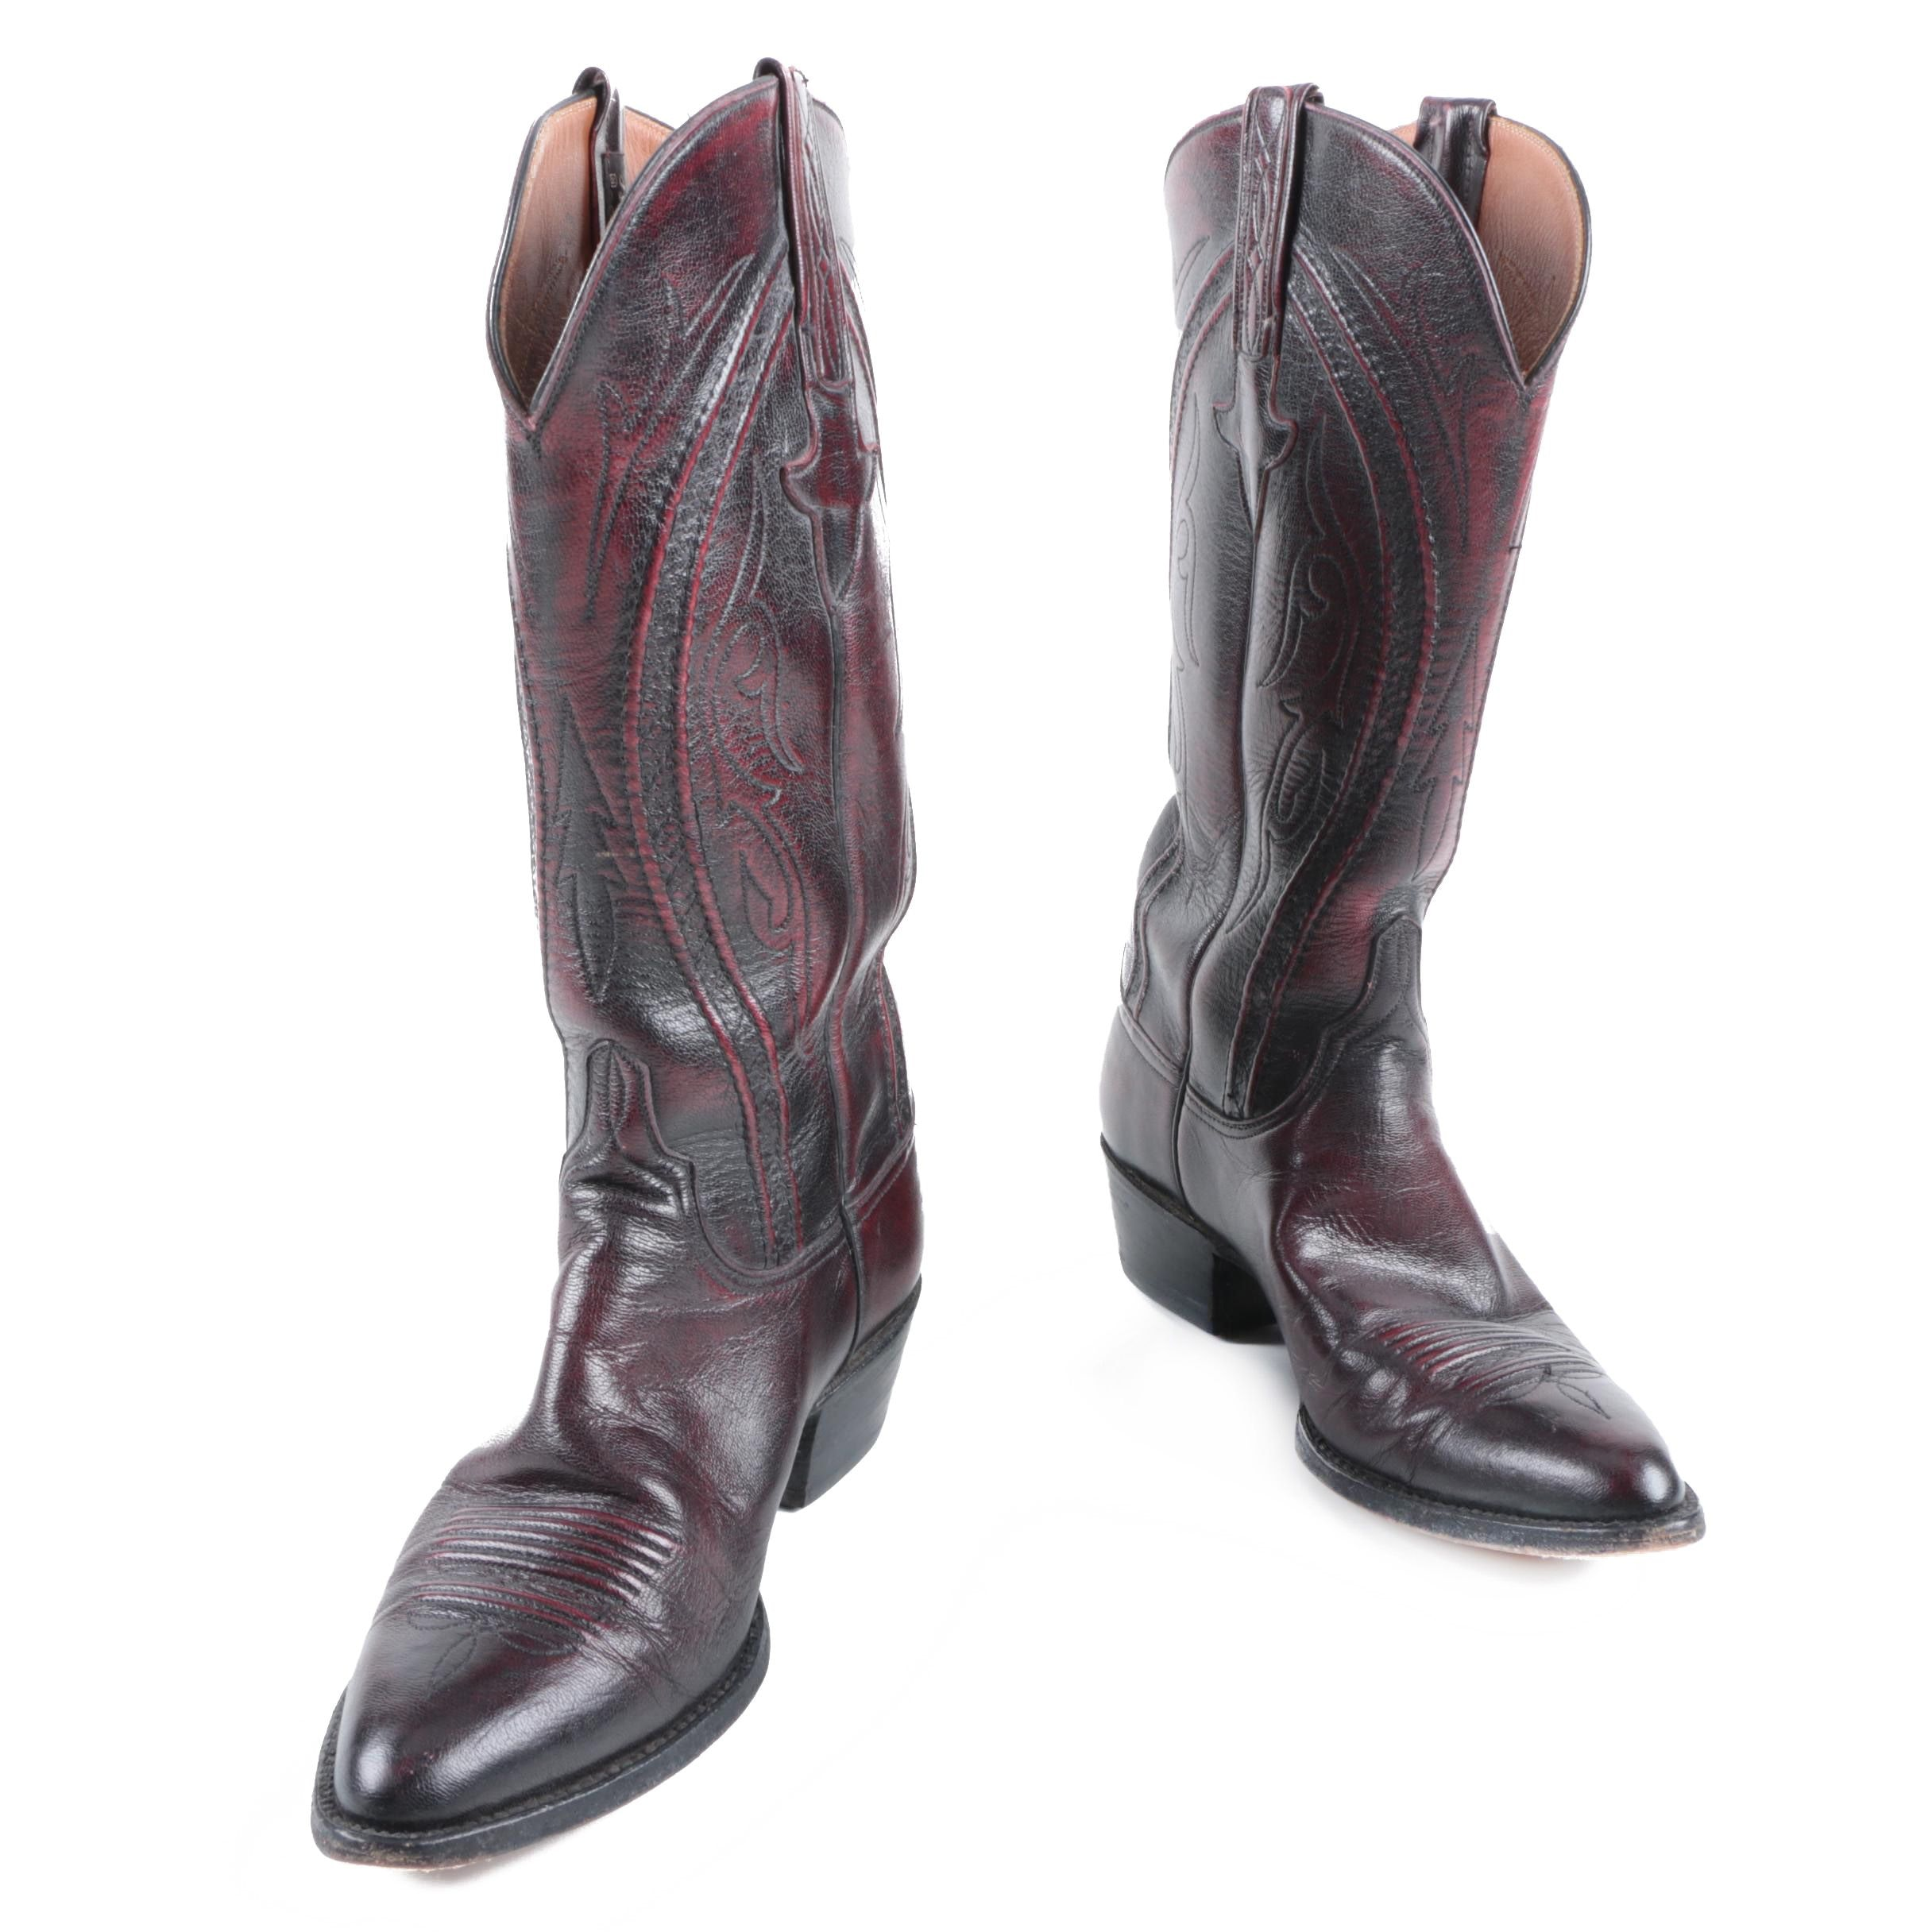 Vintage Lucchese Black Cherry Goat Leather Western Boots